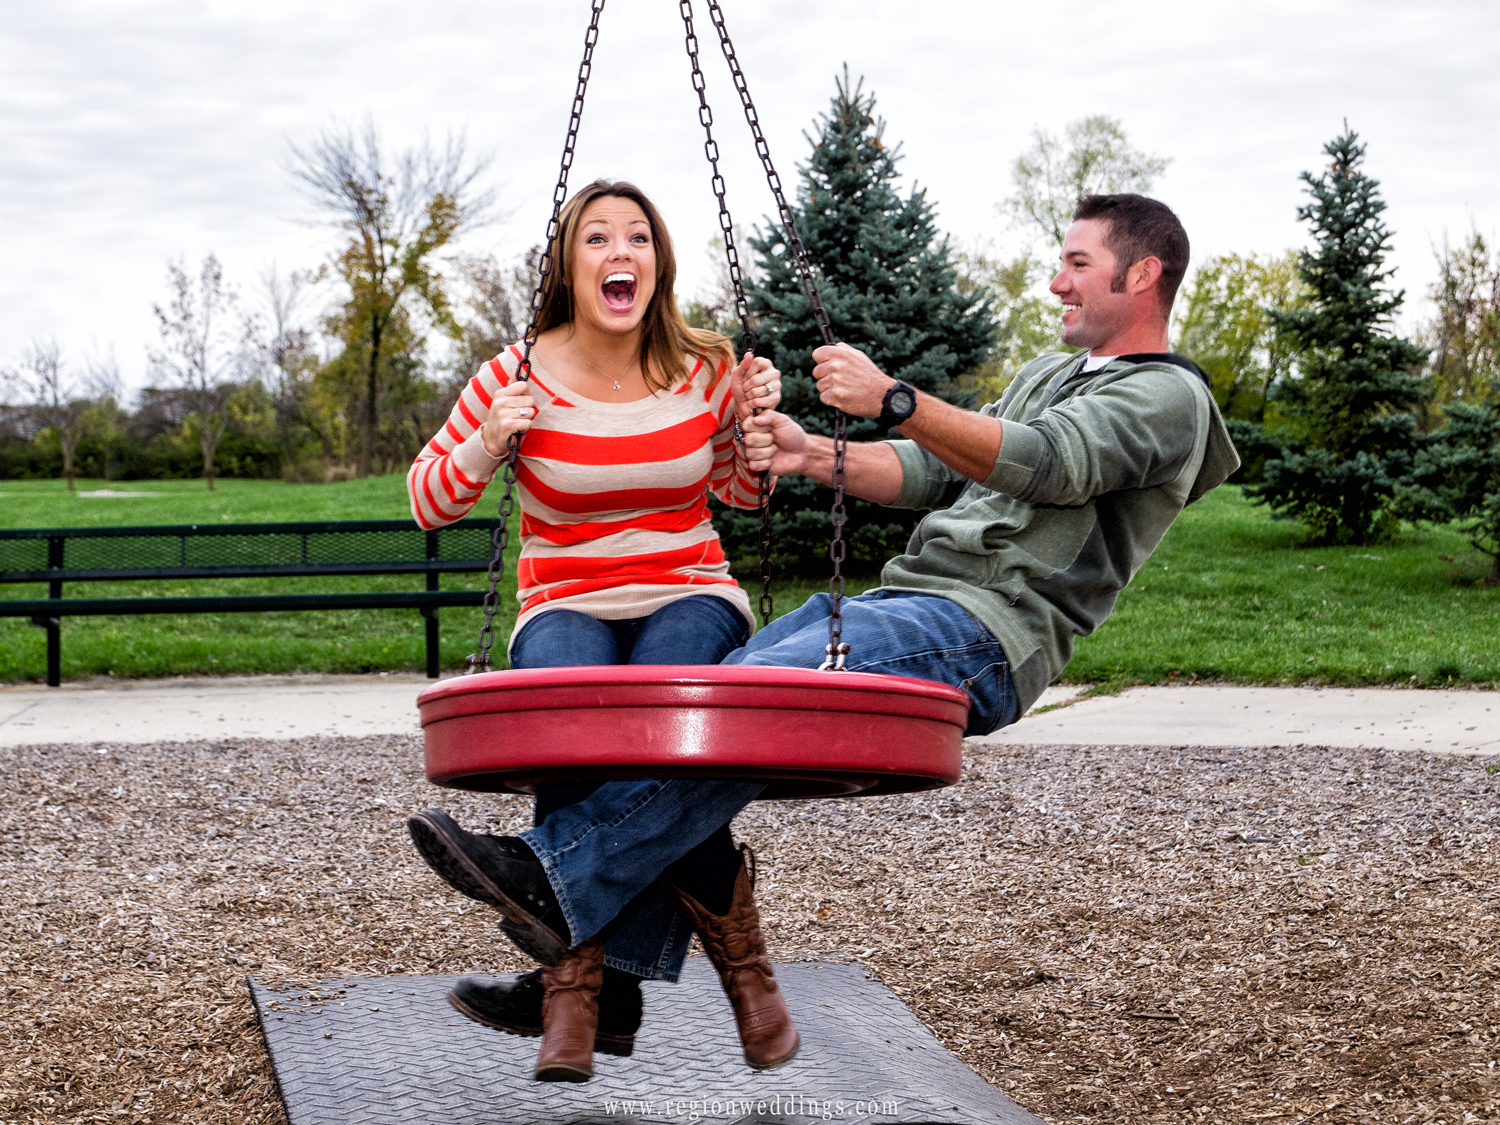 A couple plays on a swing set at the playground of a local park.